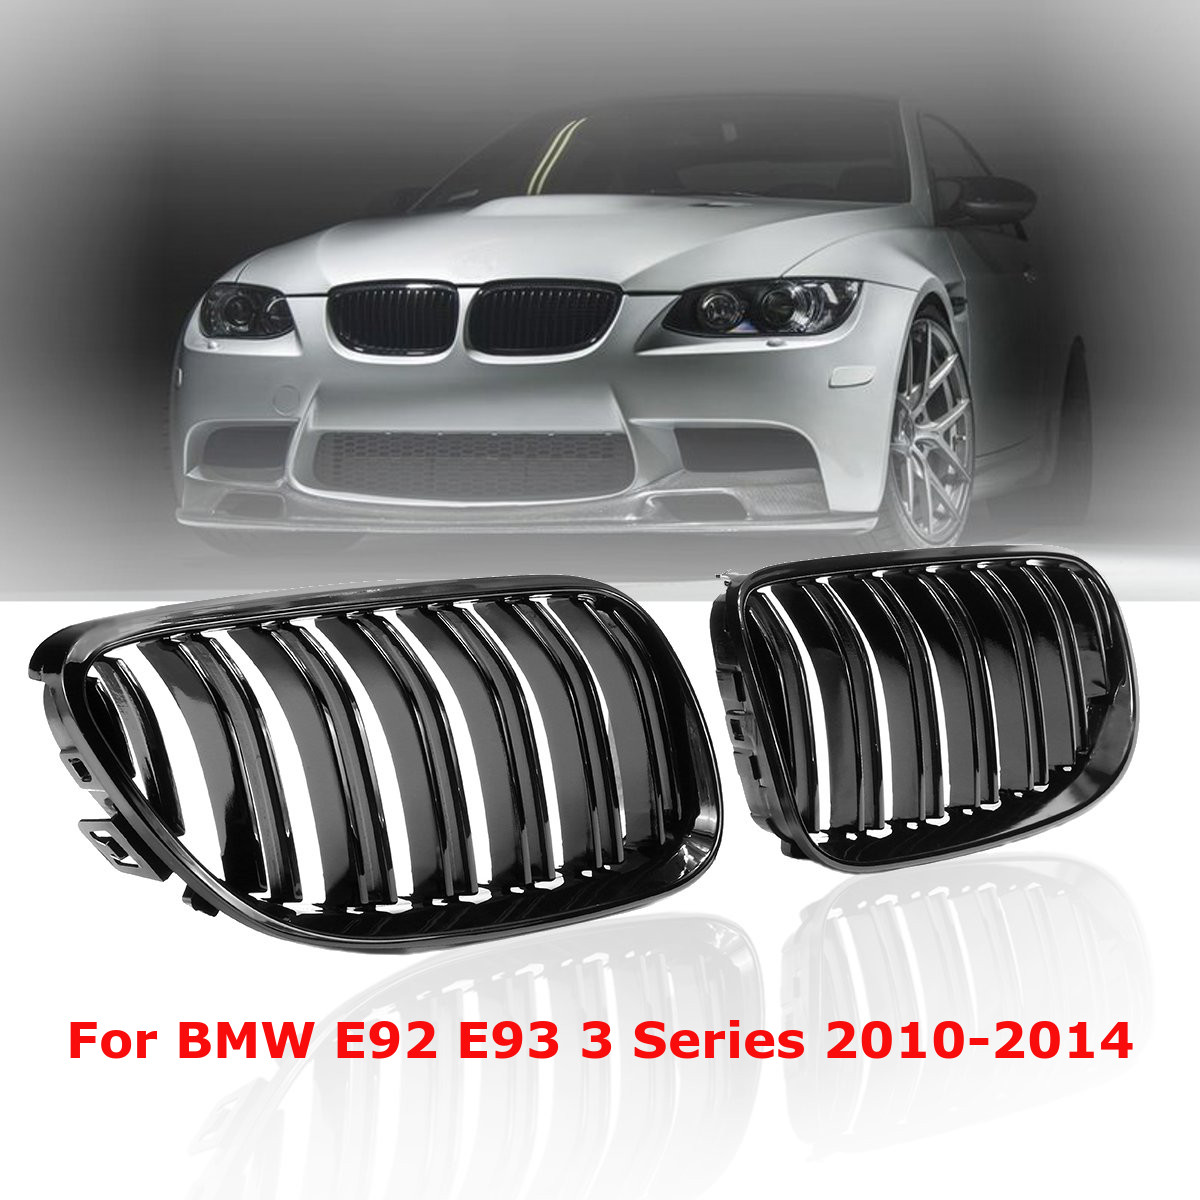 For BMW E92 E93 328i 335i 2010 2011 2012 2013 2014 Pair Gloss Black Front Bumper Kidney Grill Grille Dual Double Line Slat car bight glossy black double slat front grille grill for bmw e92 lci facelift e93 2011 2012 2013 c 5